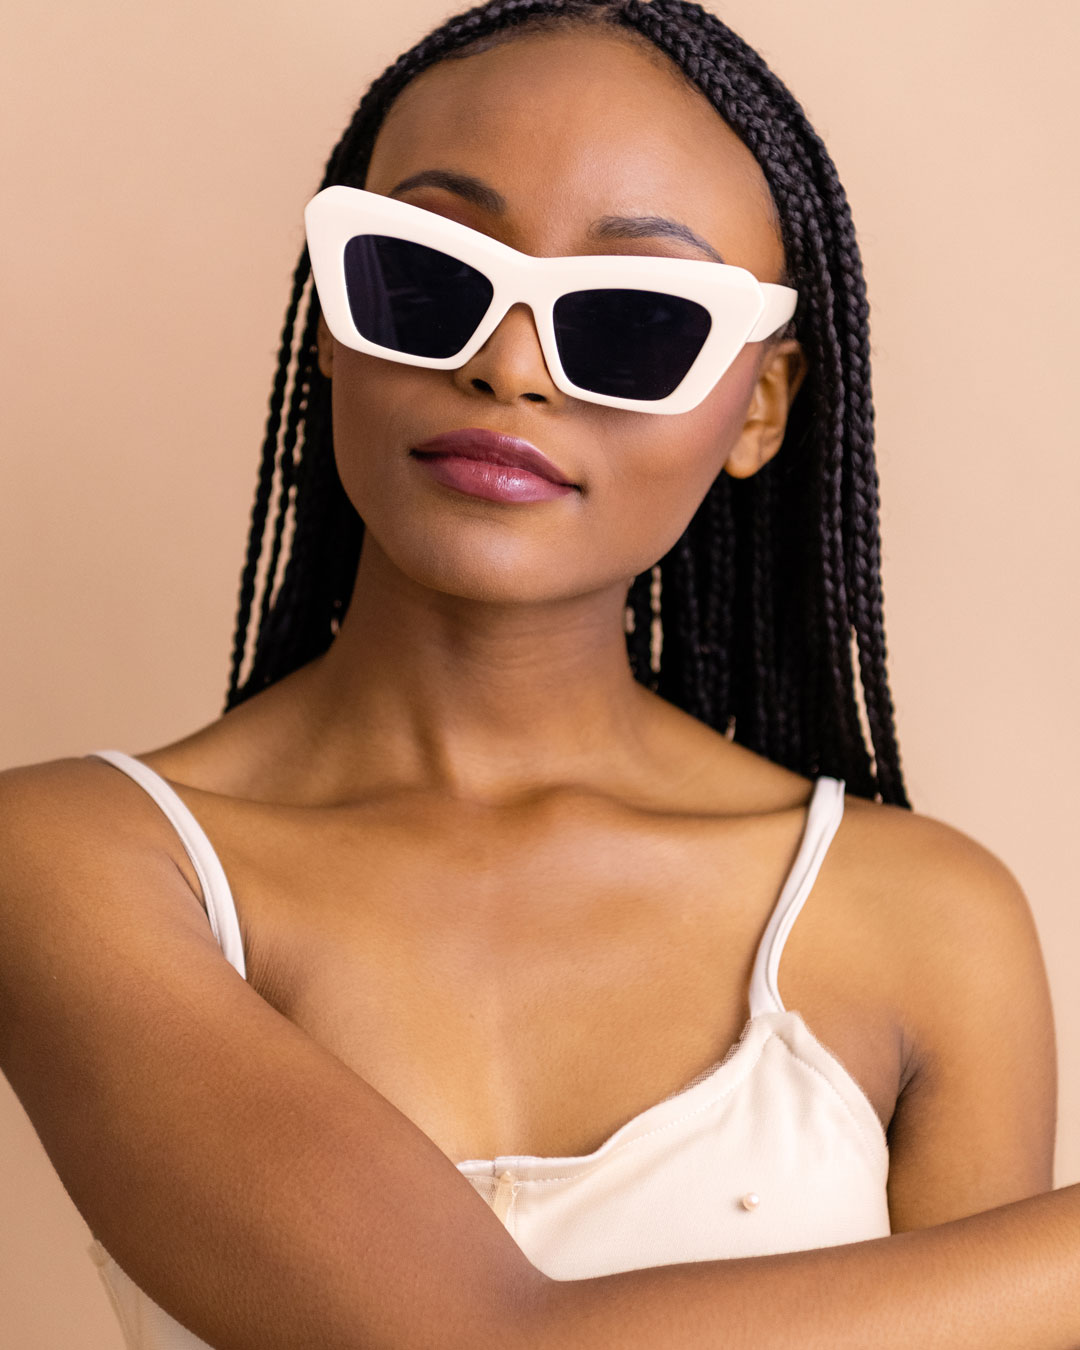 Ecru Cateye Sunglasses on girl